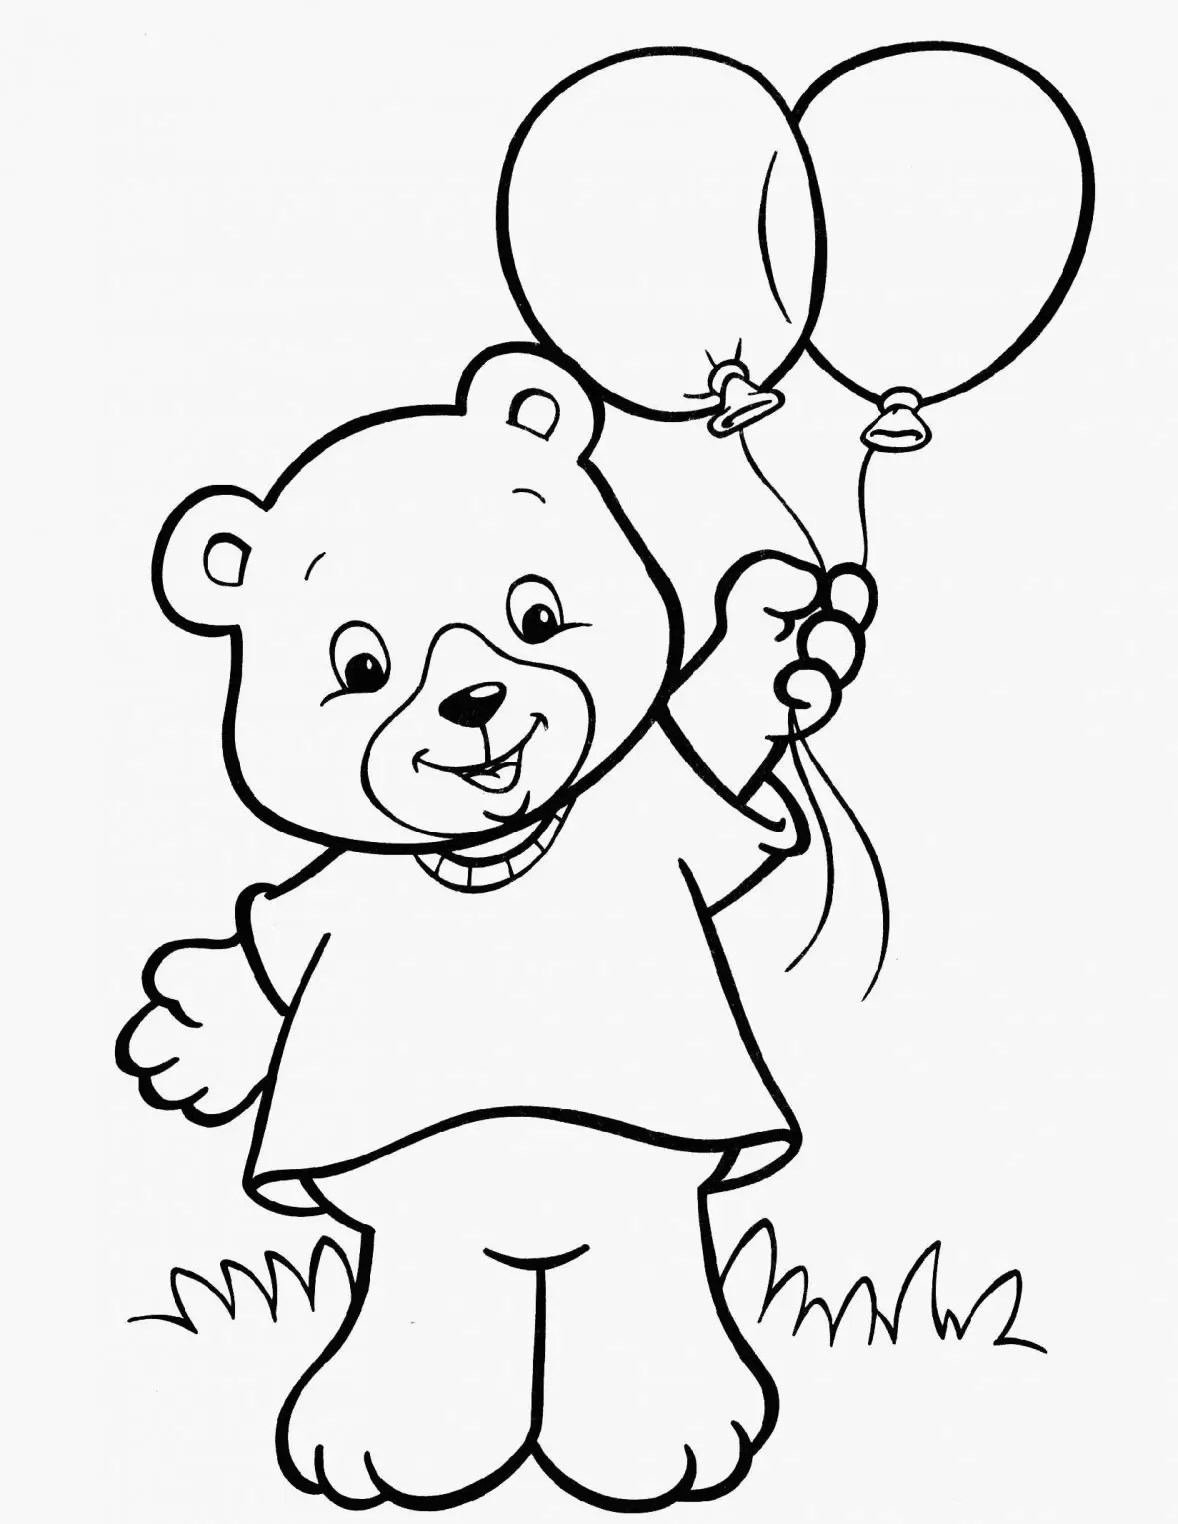 Coloring Pages For 3 Year Olds Balloons